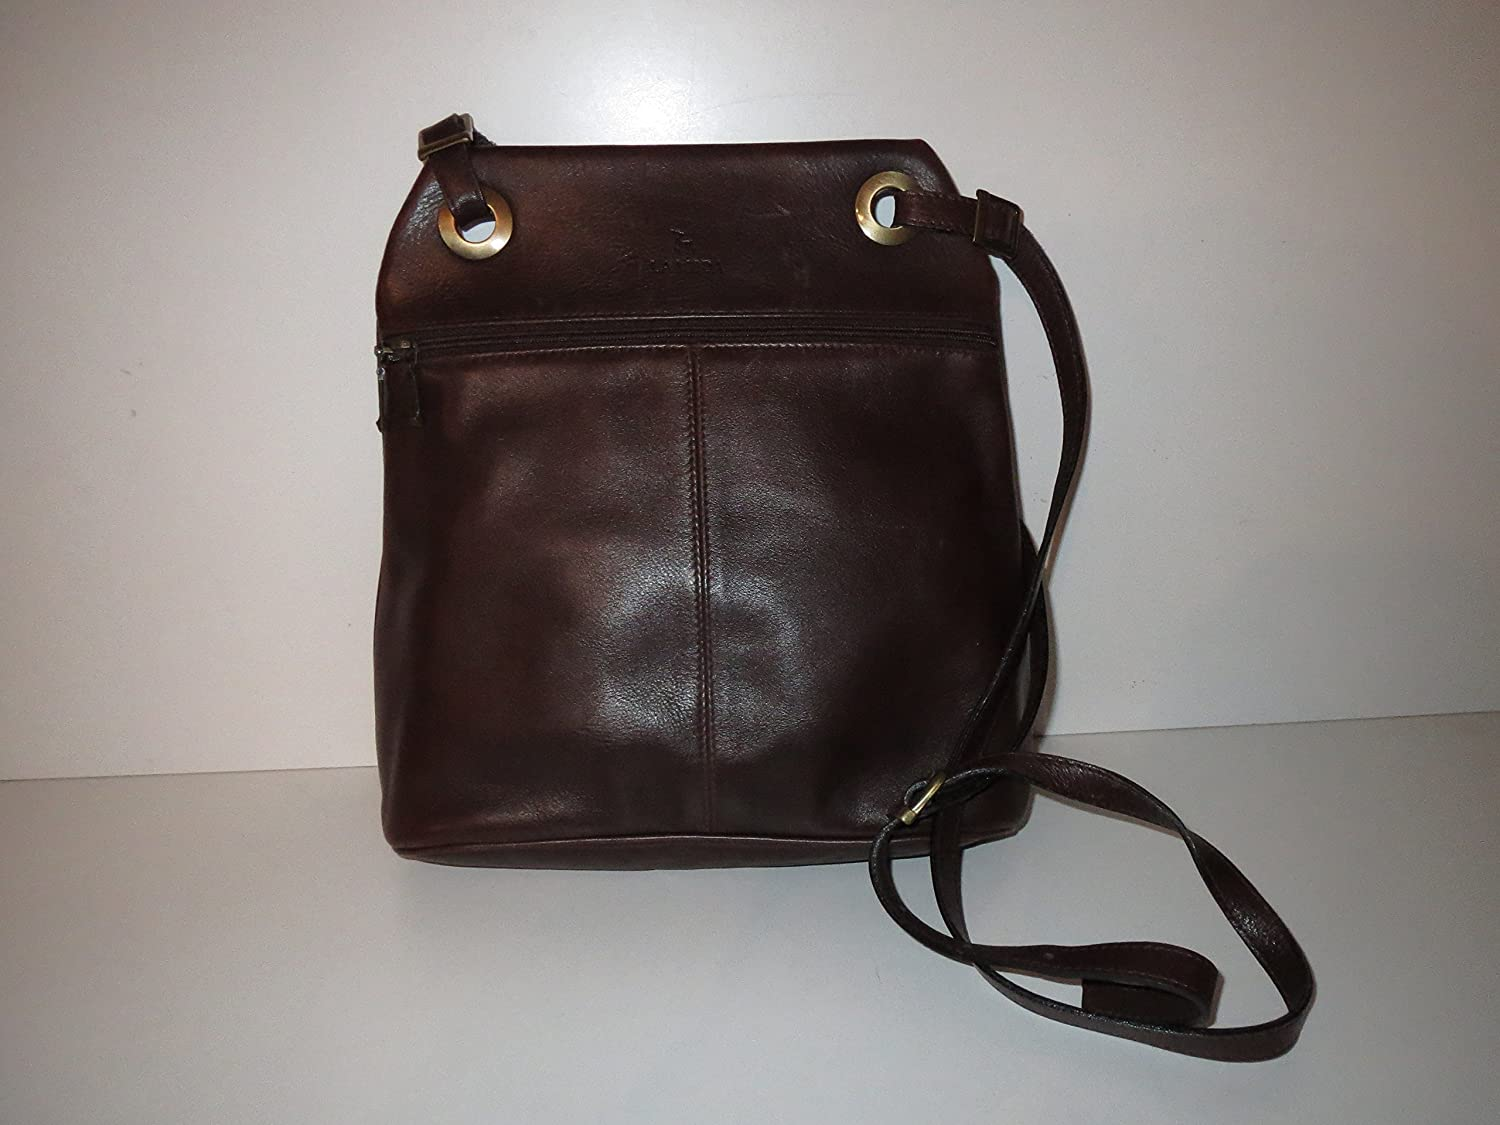 La Moda Brown Mocha Bag Shoulder Bag Leather Shoulder Bag Leather Bag   Amazon.co.uk  Luggage 9cece843c22a4